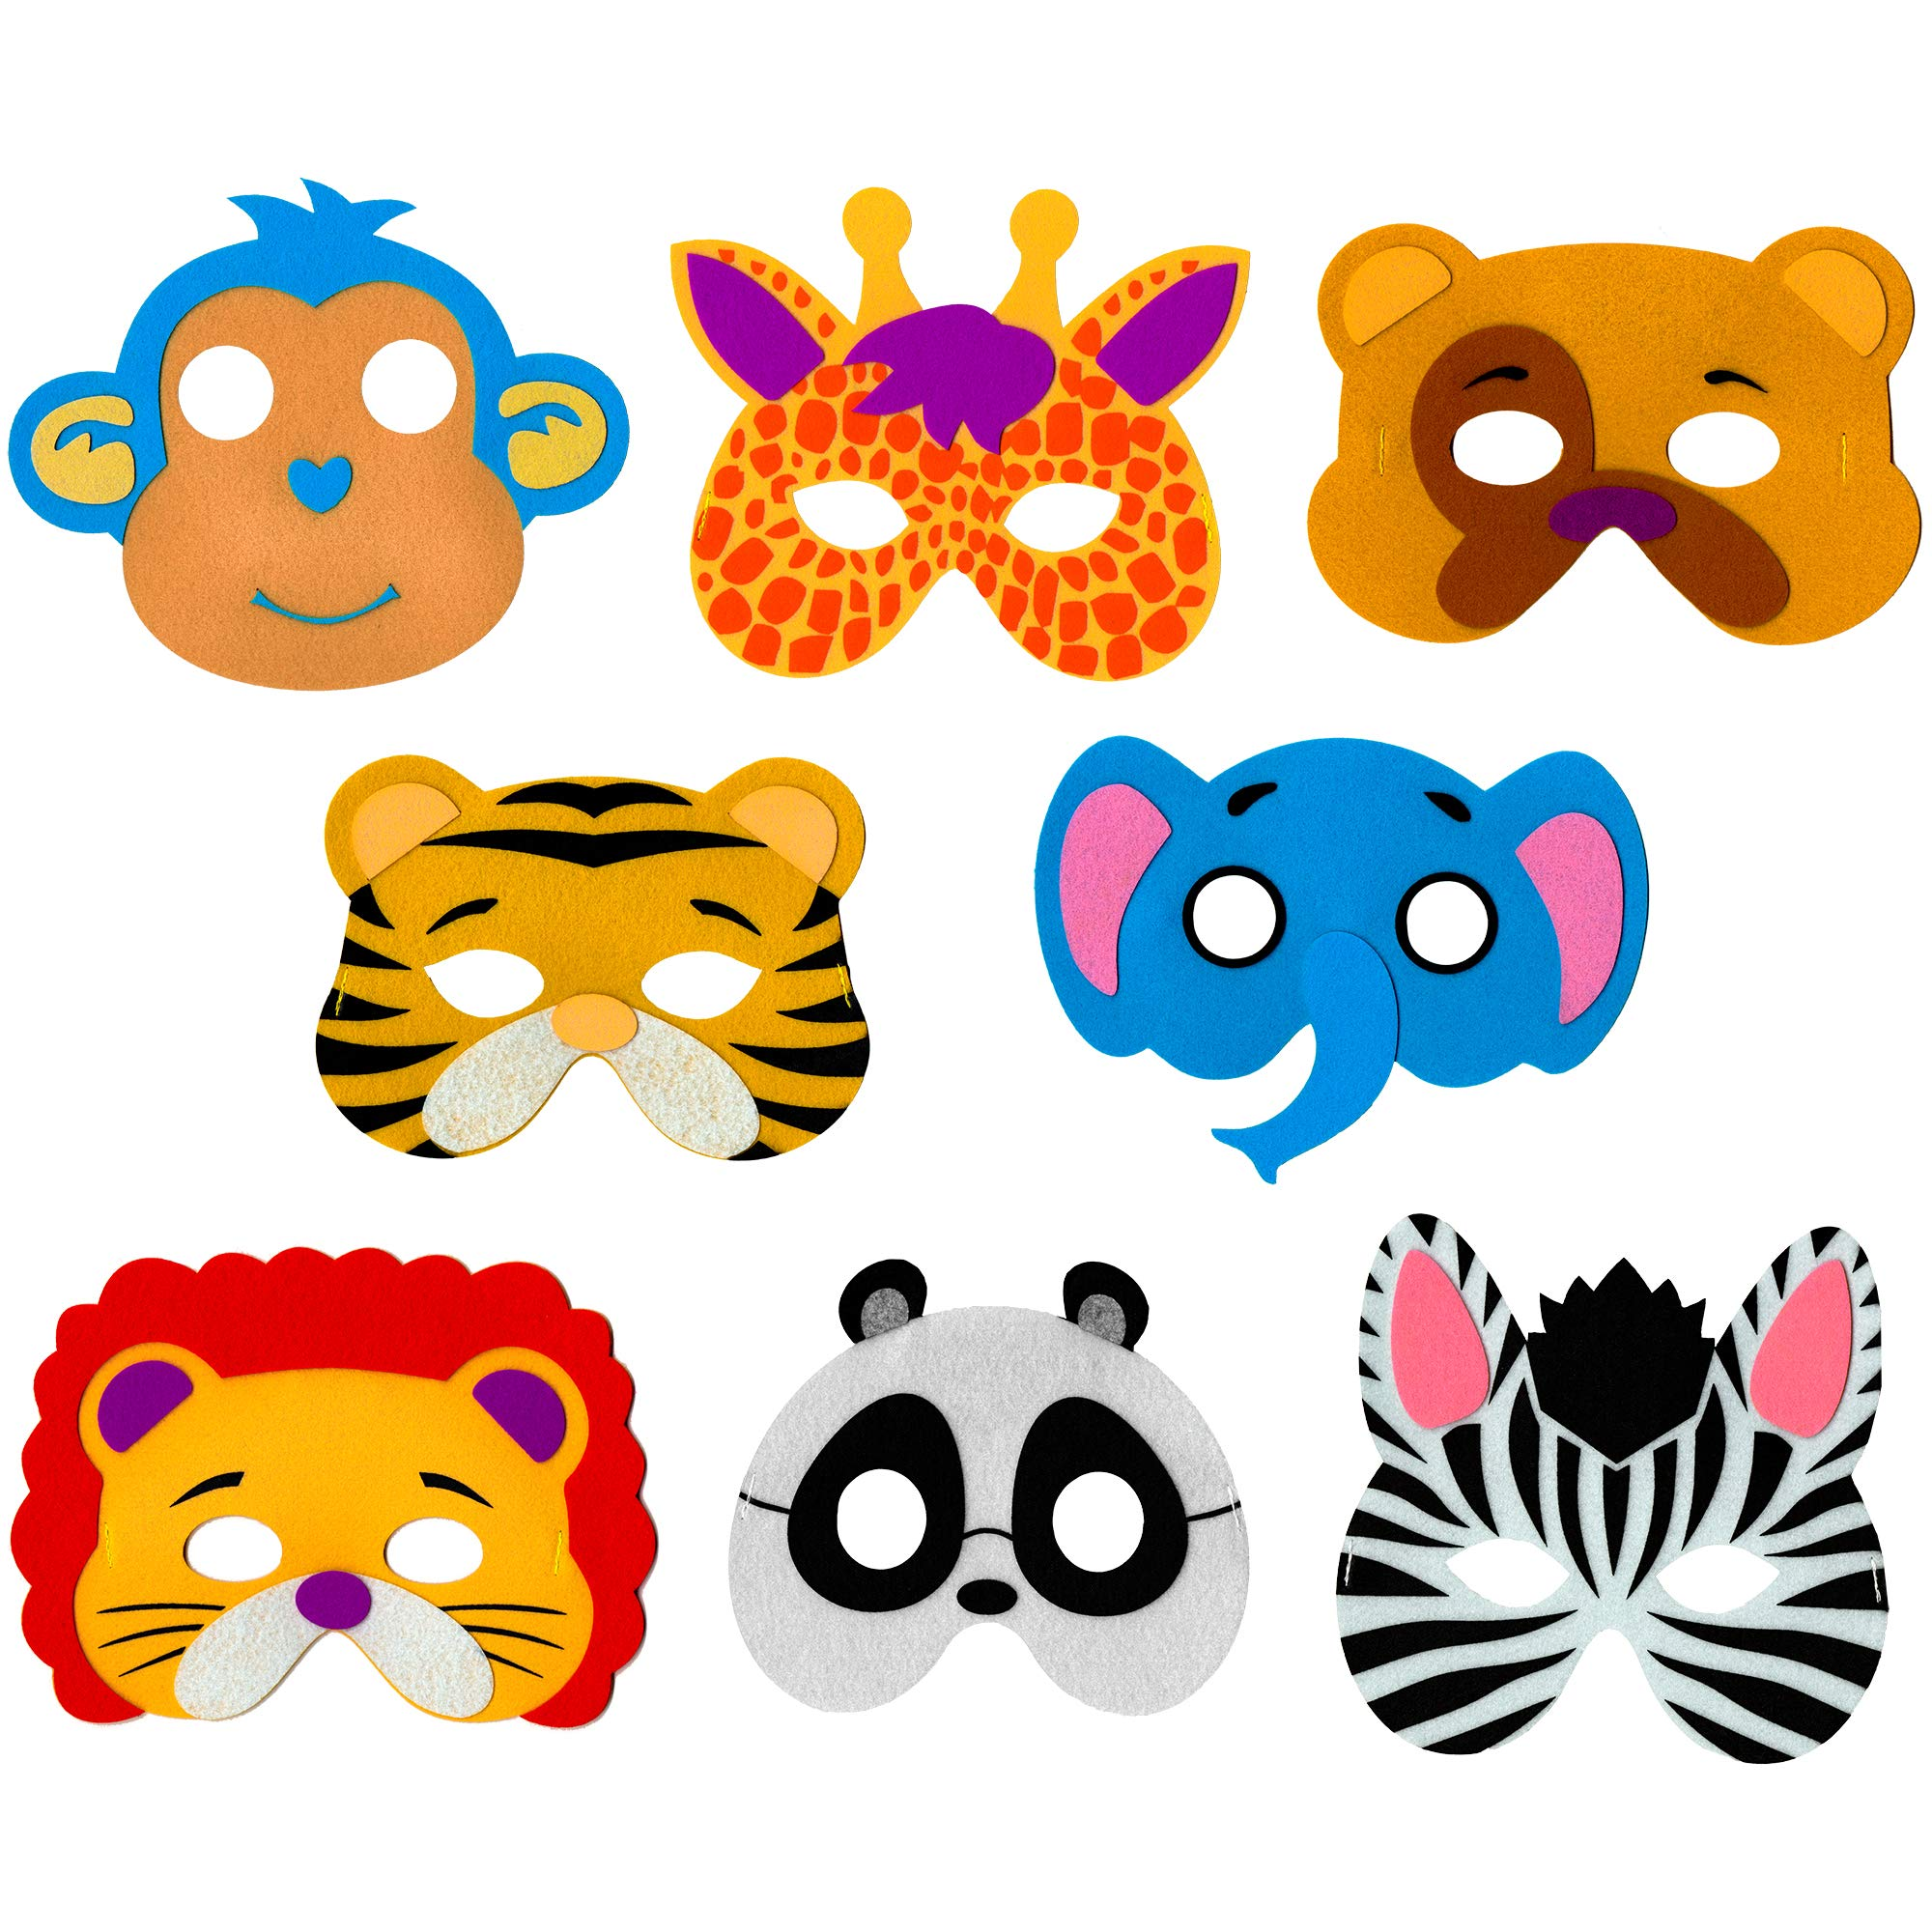 Zoo Animal Masks for Kids - 8 Assorted Felt Toy Masks, Best Birthday Party Supplies Favors for Goodie Bags, Gifts, etc